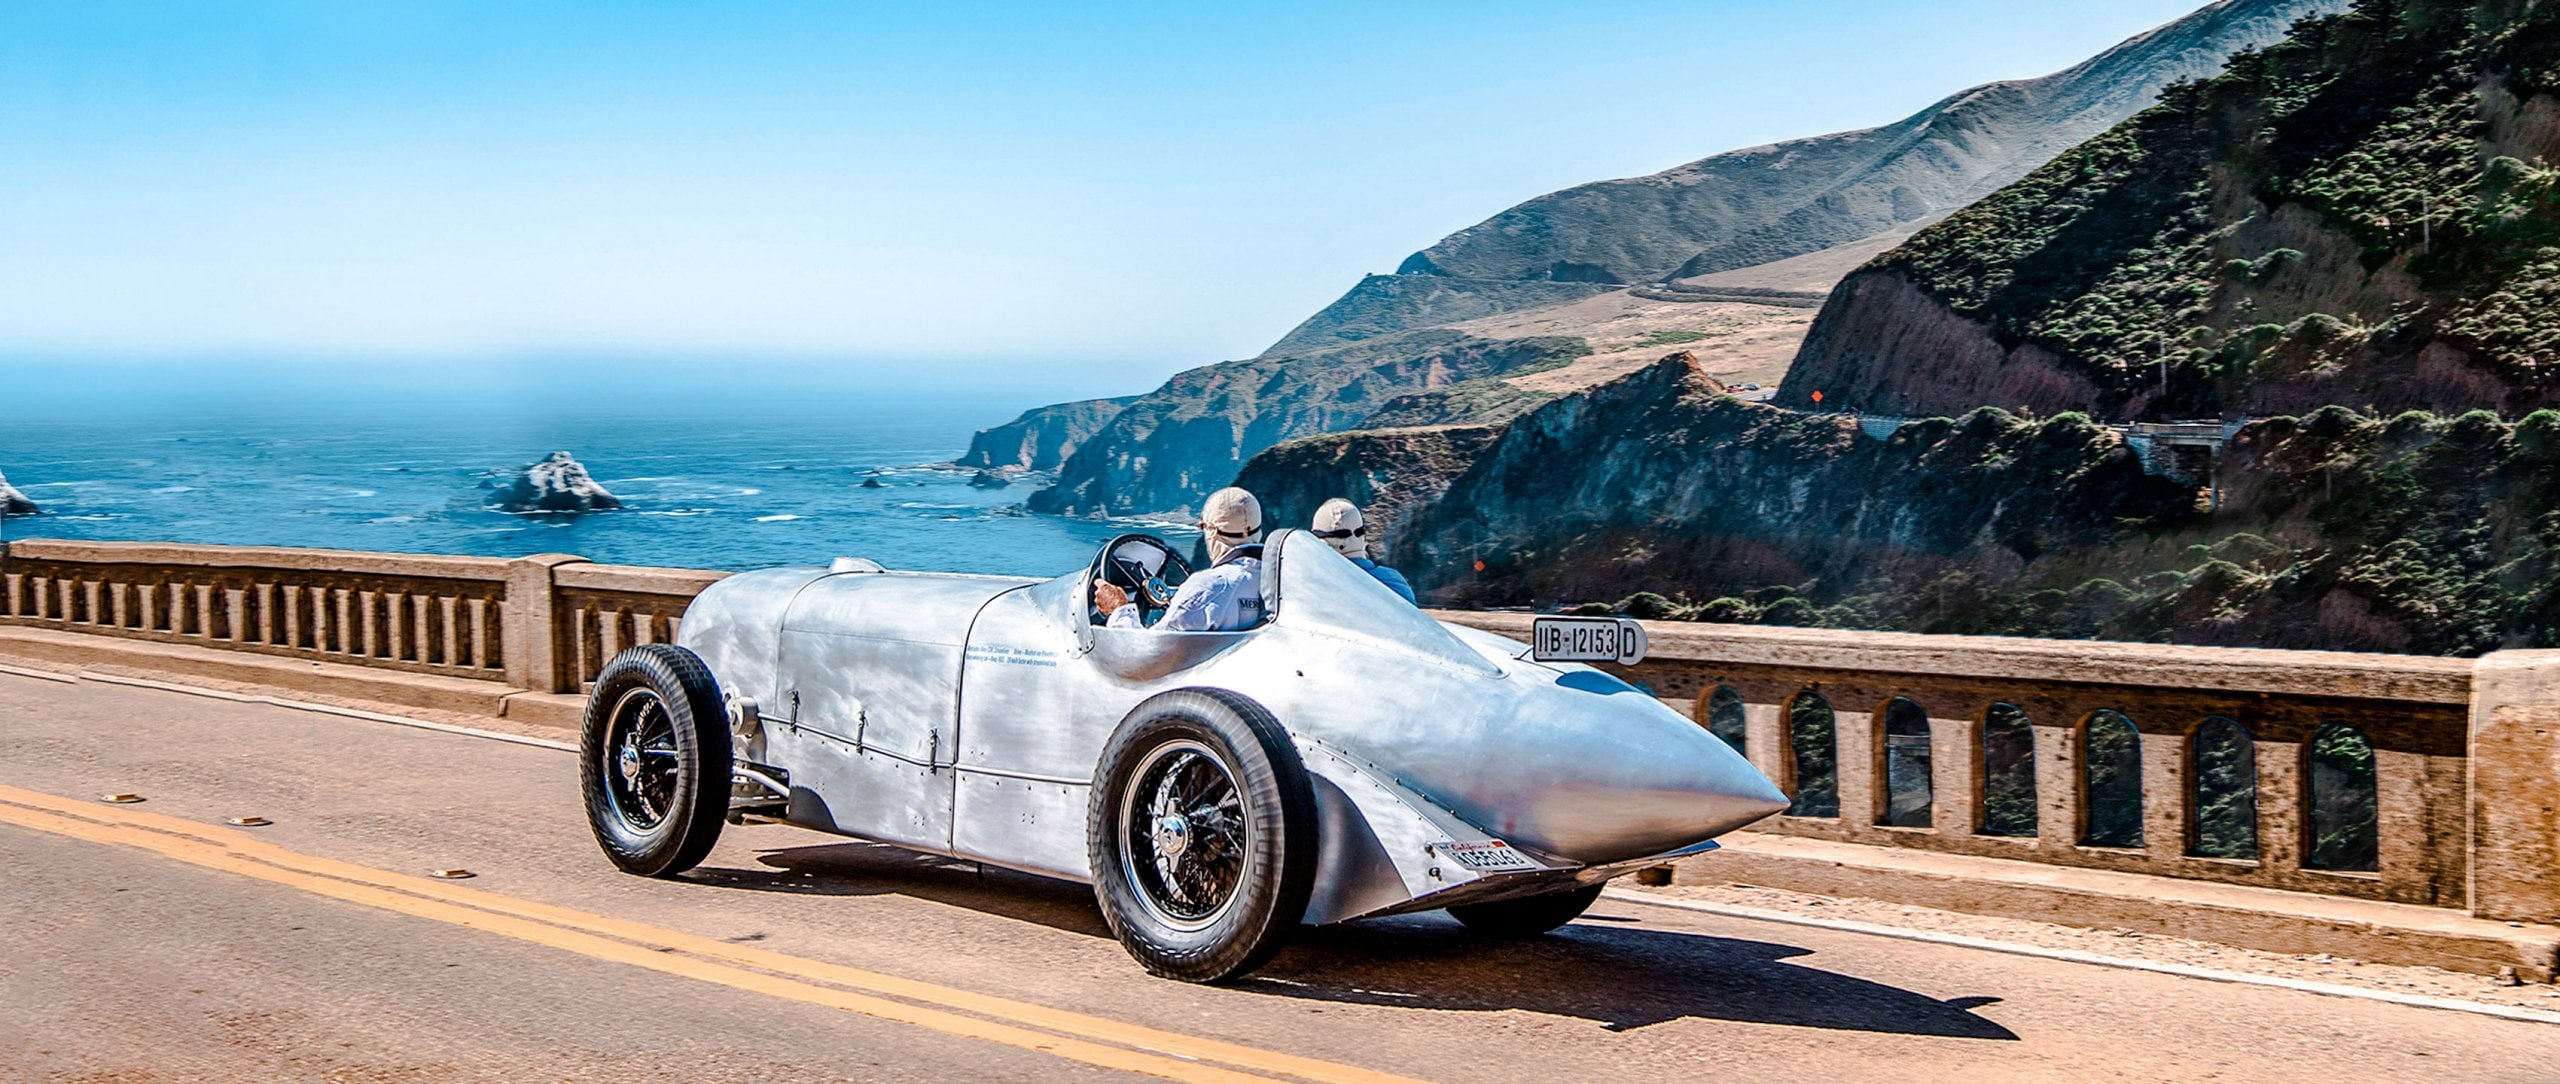 In the spectacular Mercedes-Benz SSKL streamlined racing car on the Pacific Coast Highway heading south, always looking to the roaring Pacific Ocean at the right.